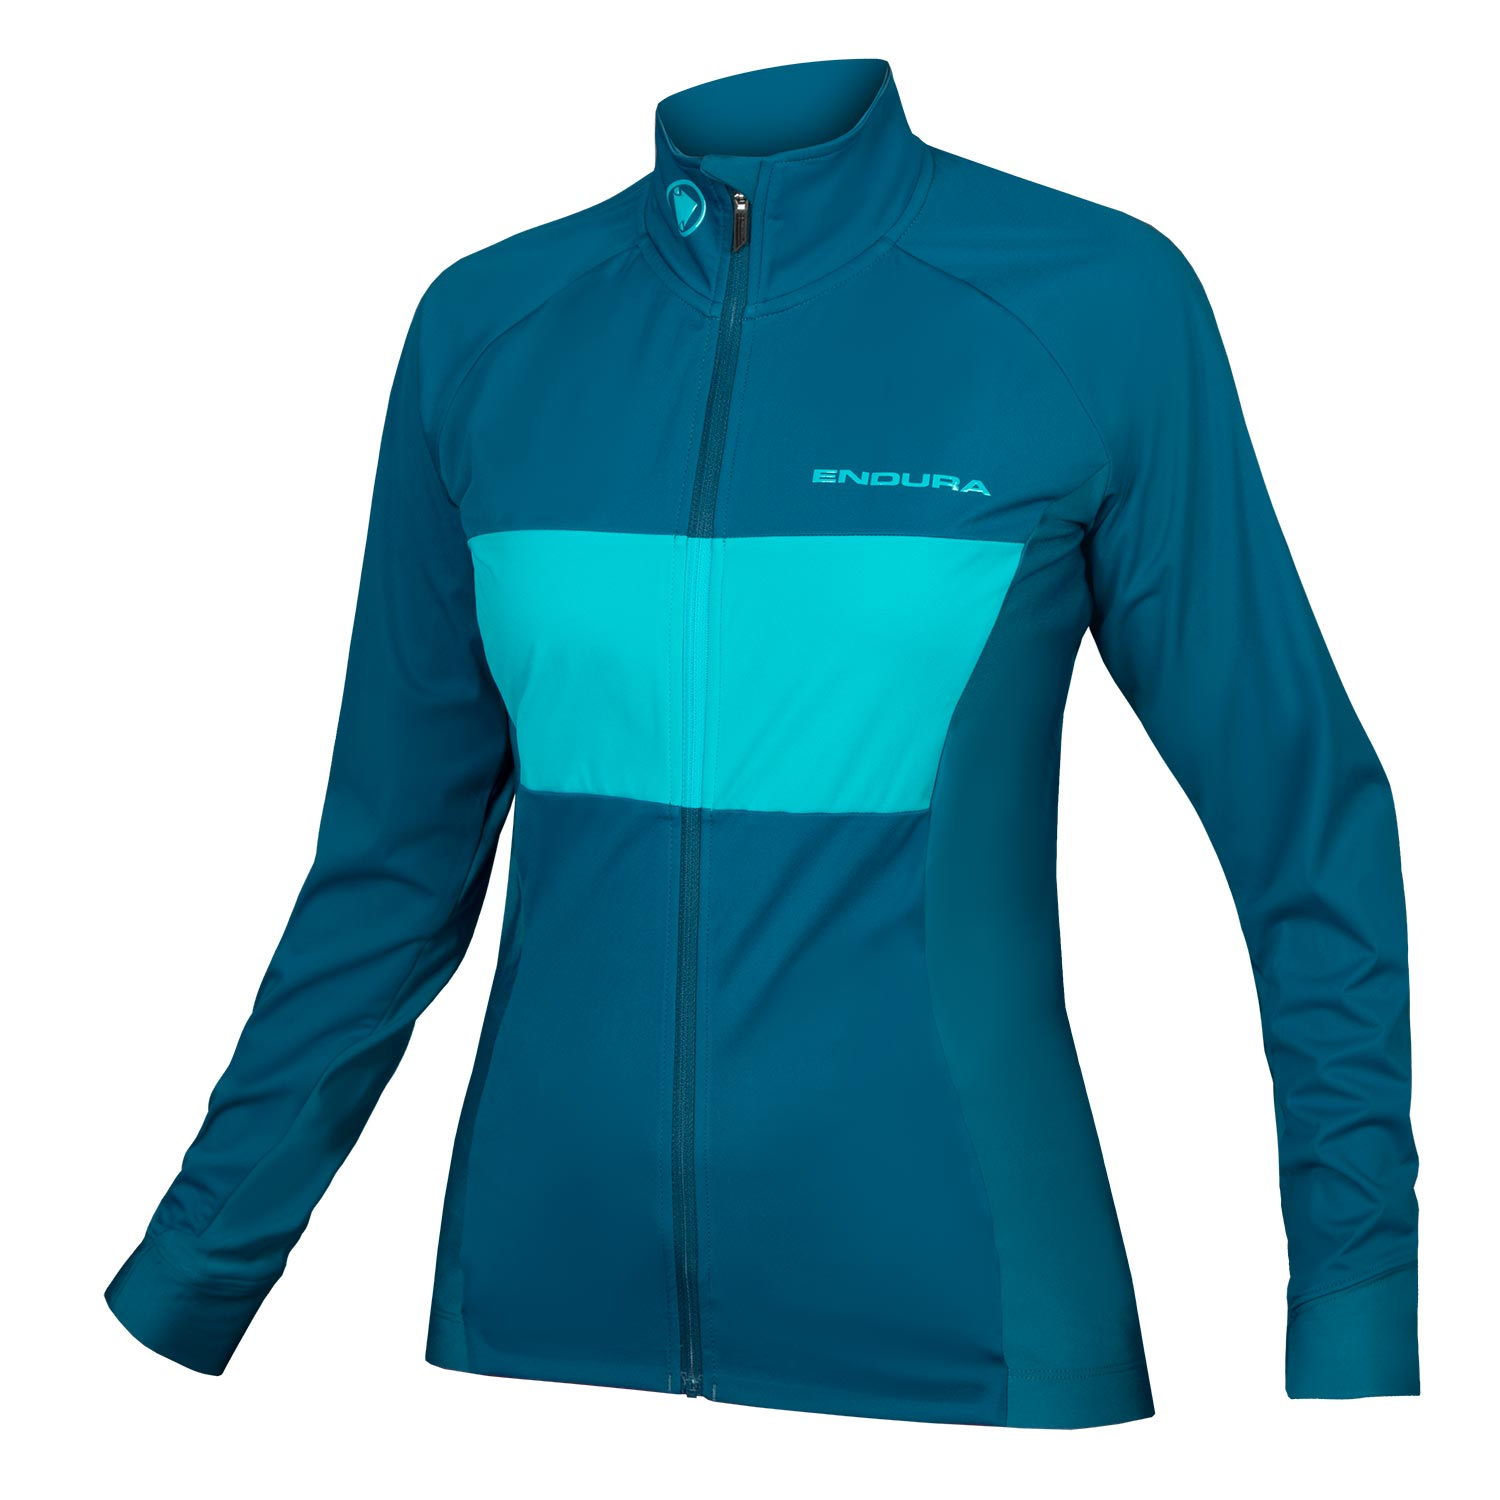 Endura Women's FS260 Pro Jetstream Long-sleeve Jersey